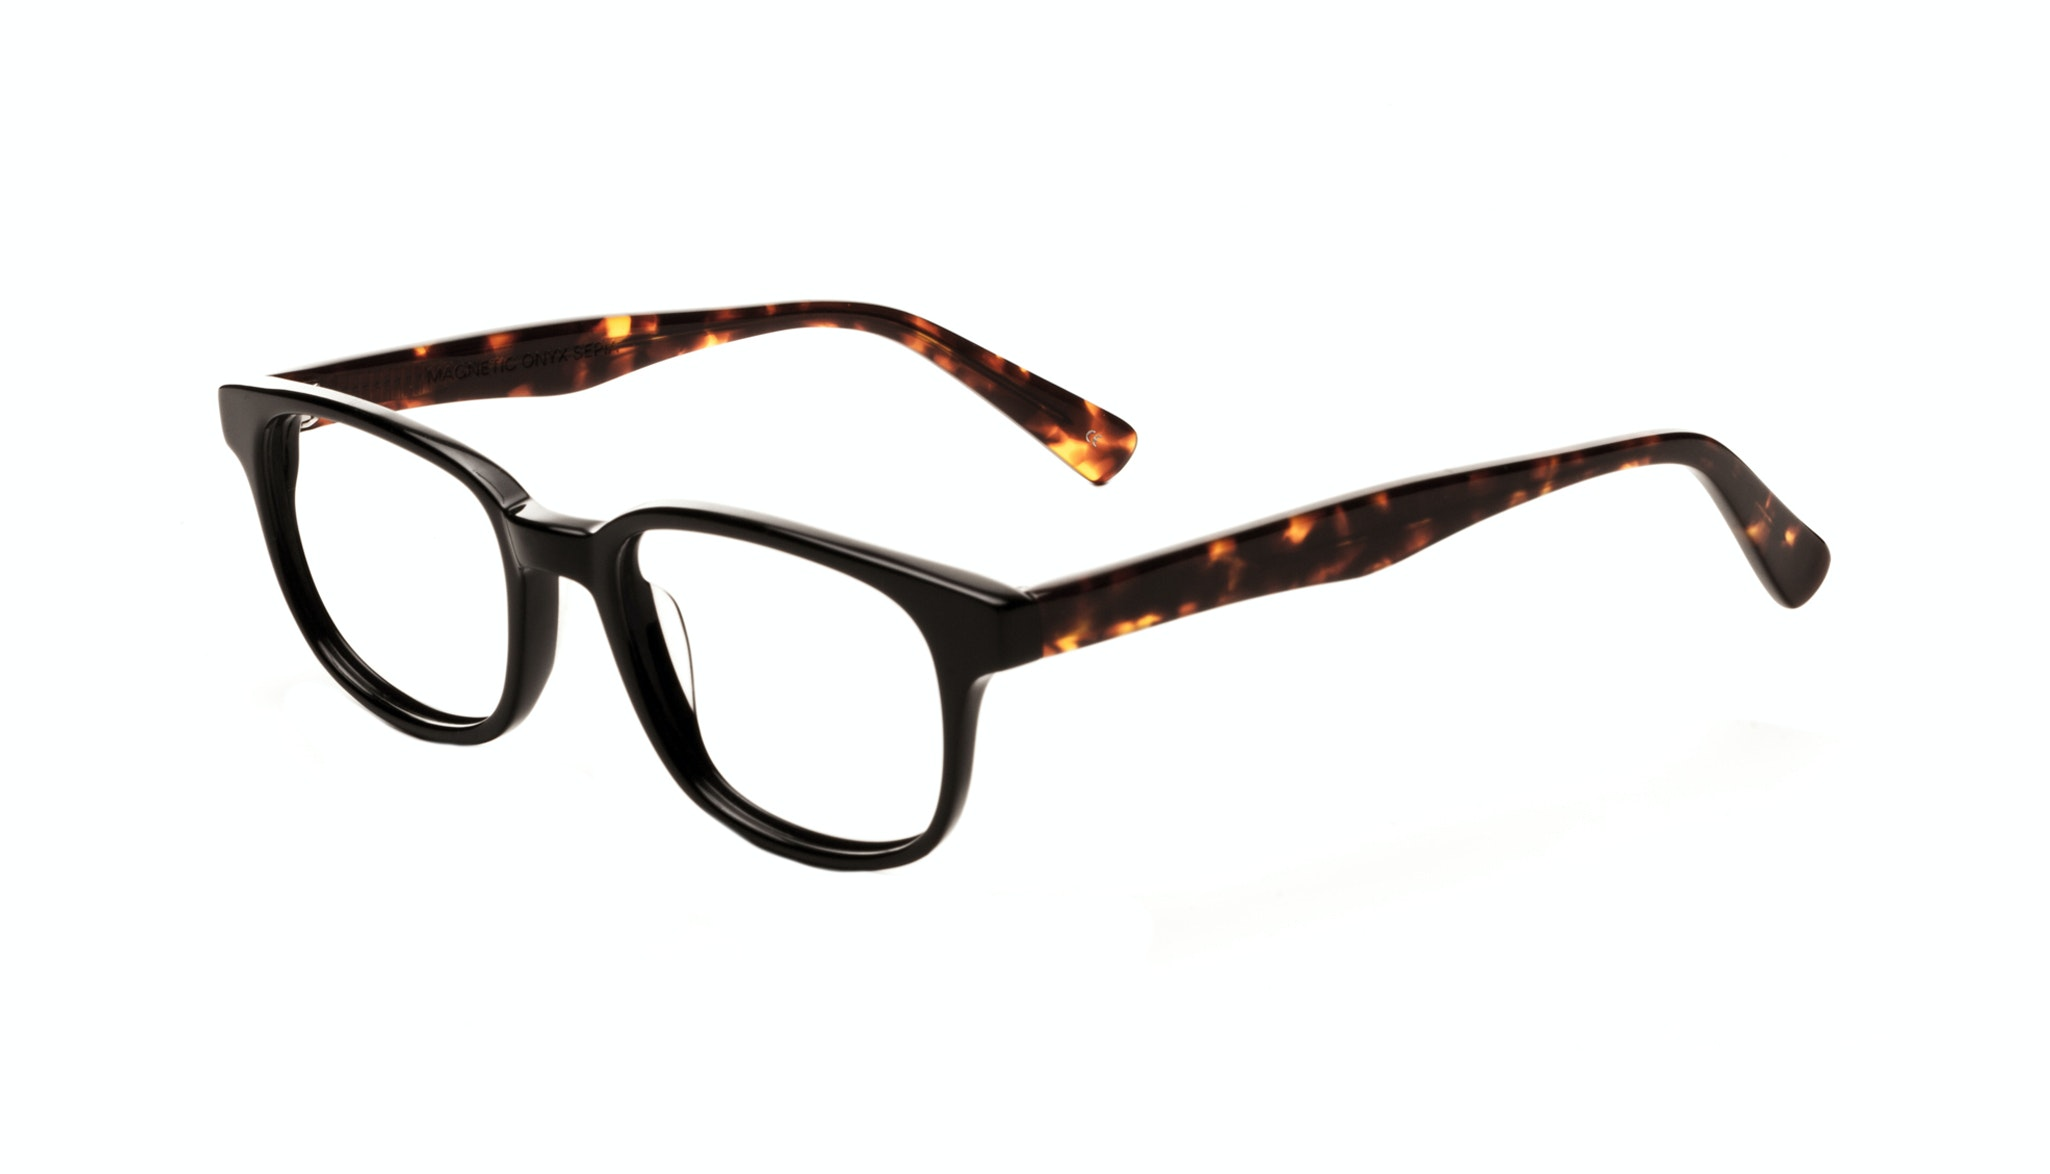 Affordable Fashion Glasses Rectangle Square Eyeglasses Men Women Magnetic Onyx Sepia Tilt